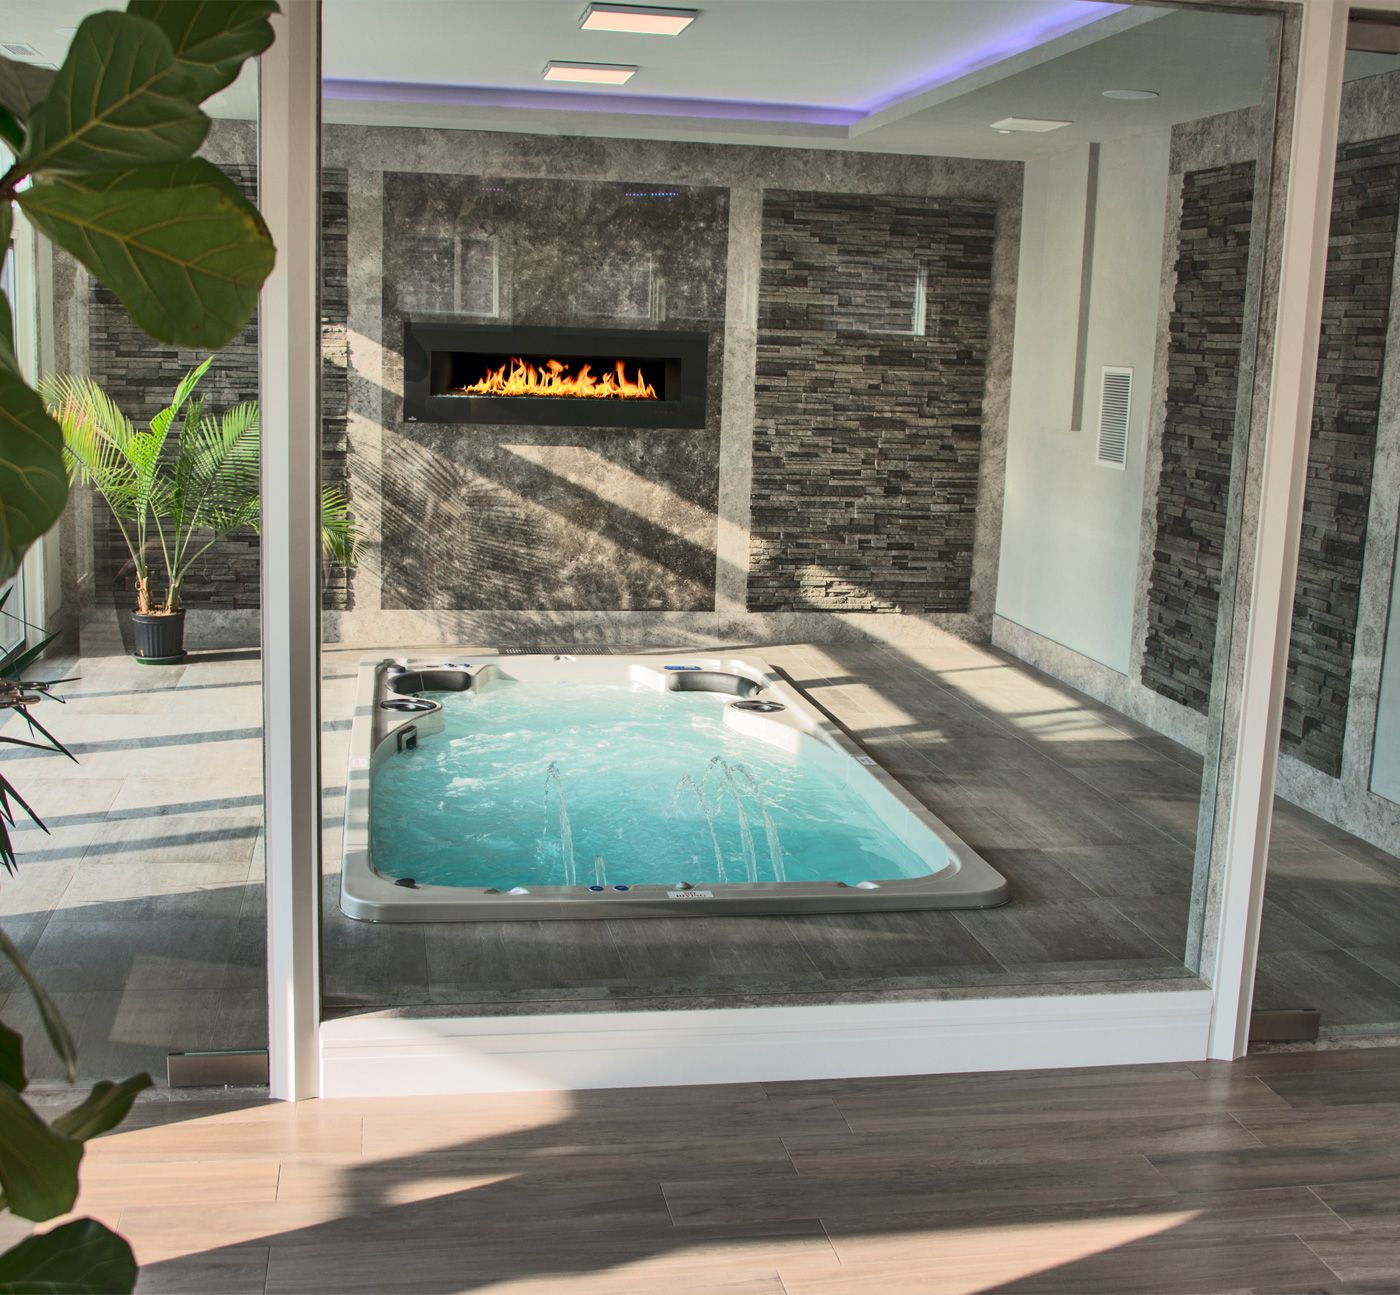 Check out this beautiful indoor swim spa install! | Amazing Hot Tub ...